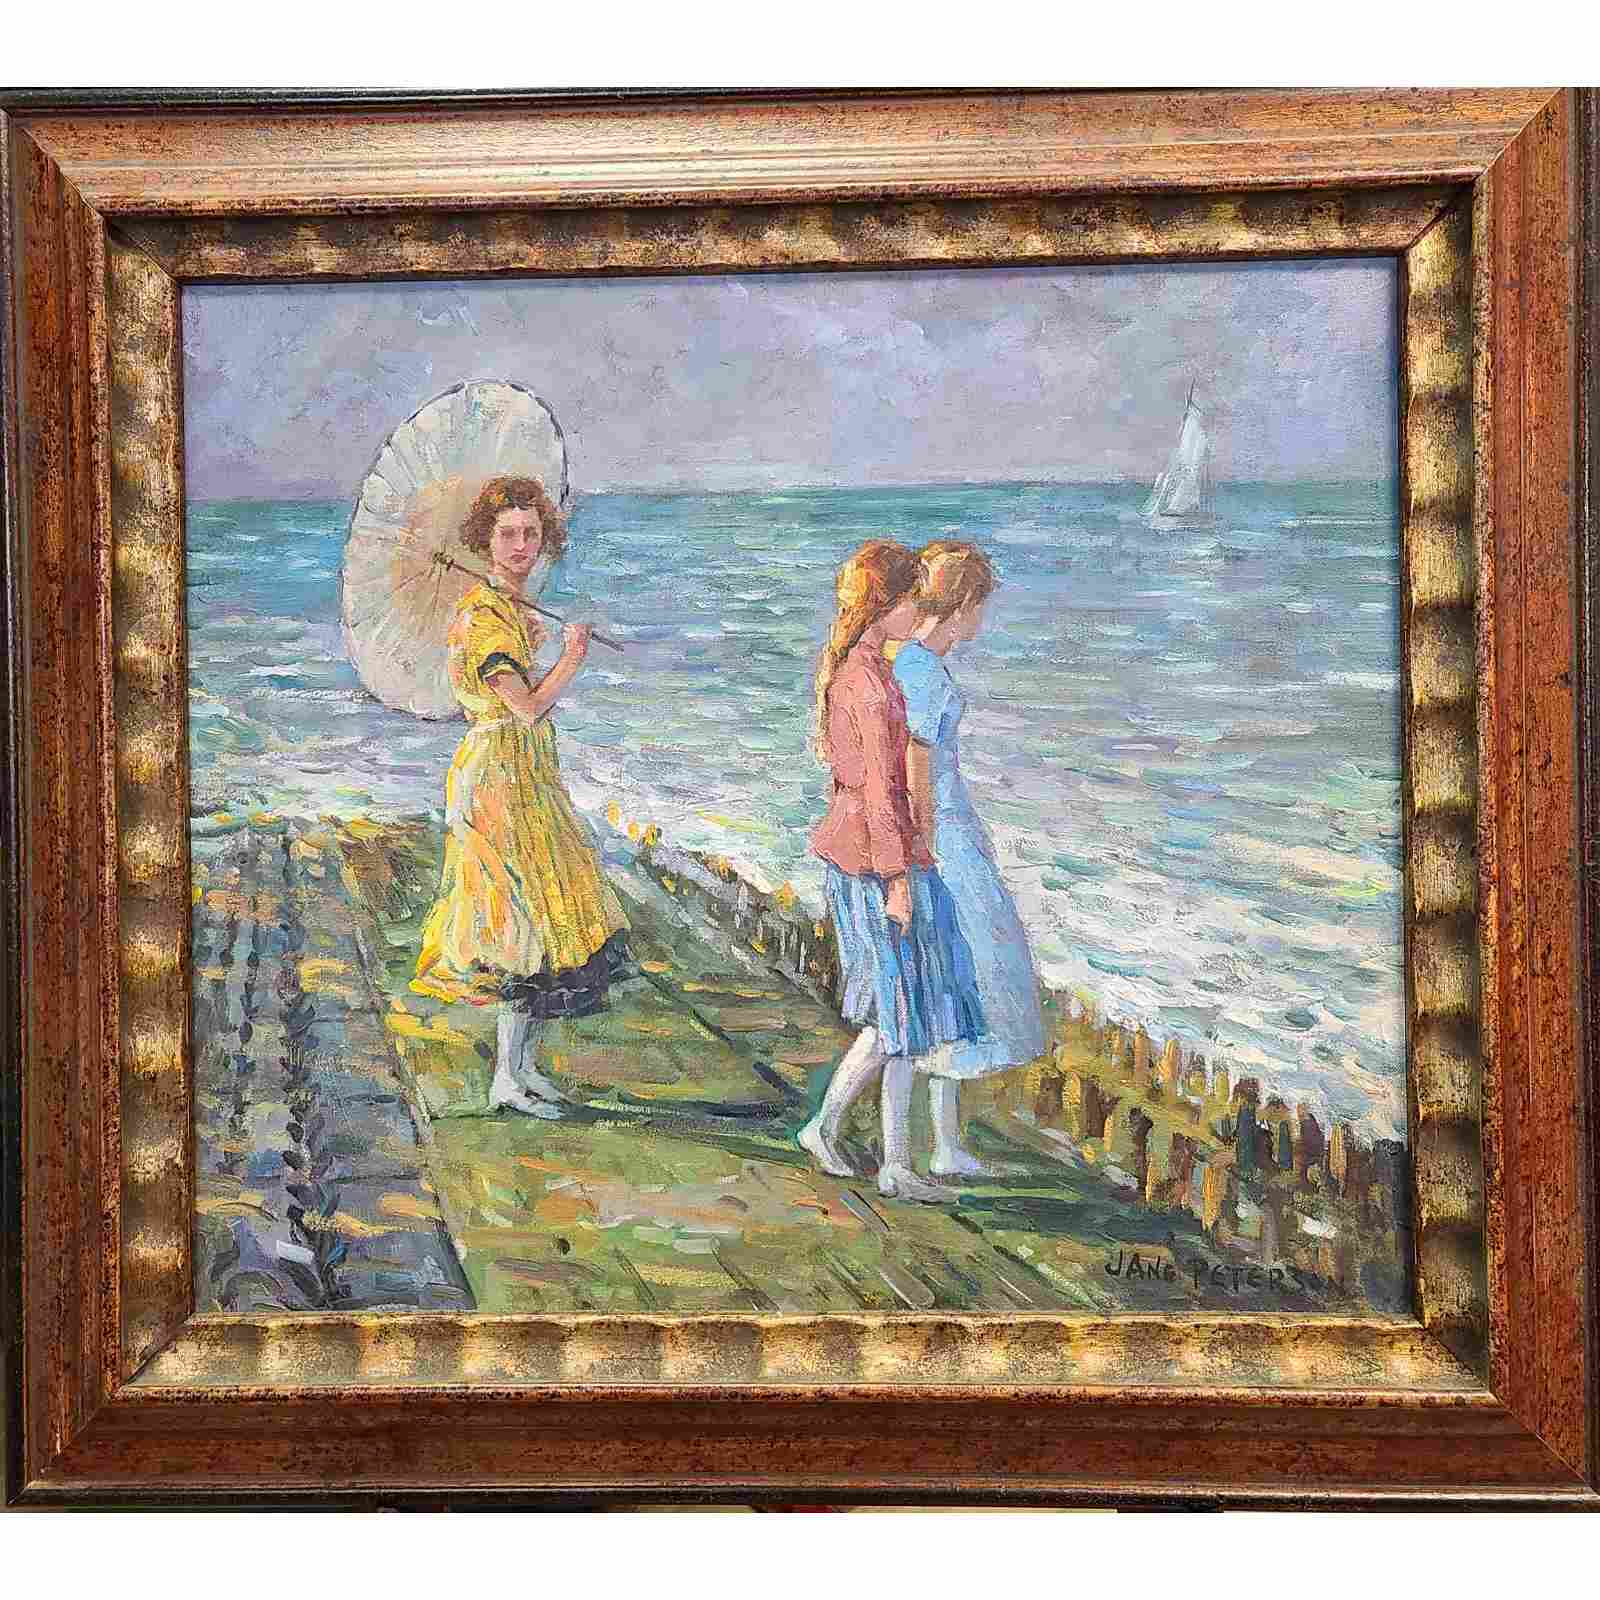 Jane Peterson 1876-1965 Oil On Canvas Painting